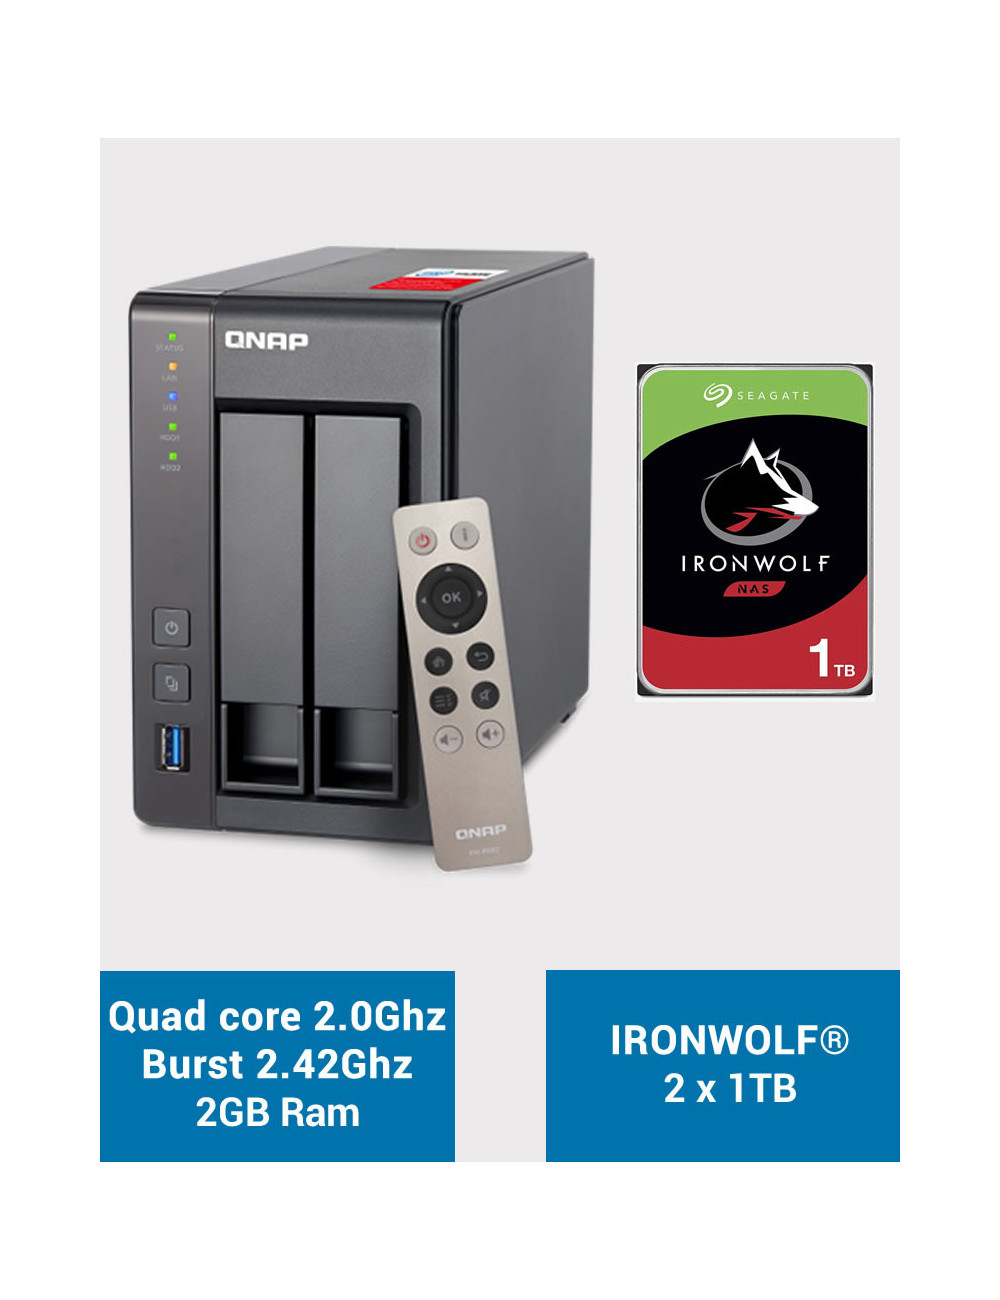 QNAP TS-251+ Serveur NAS IRONWOLF 2 To